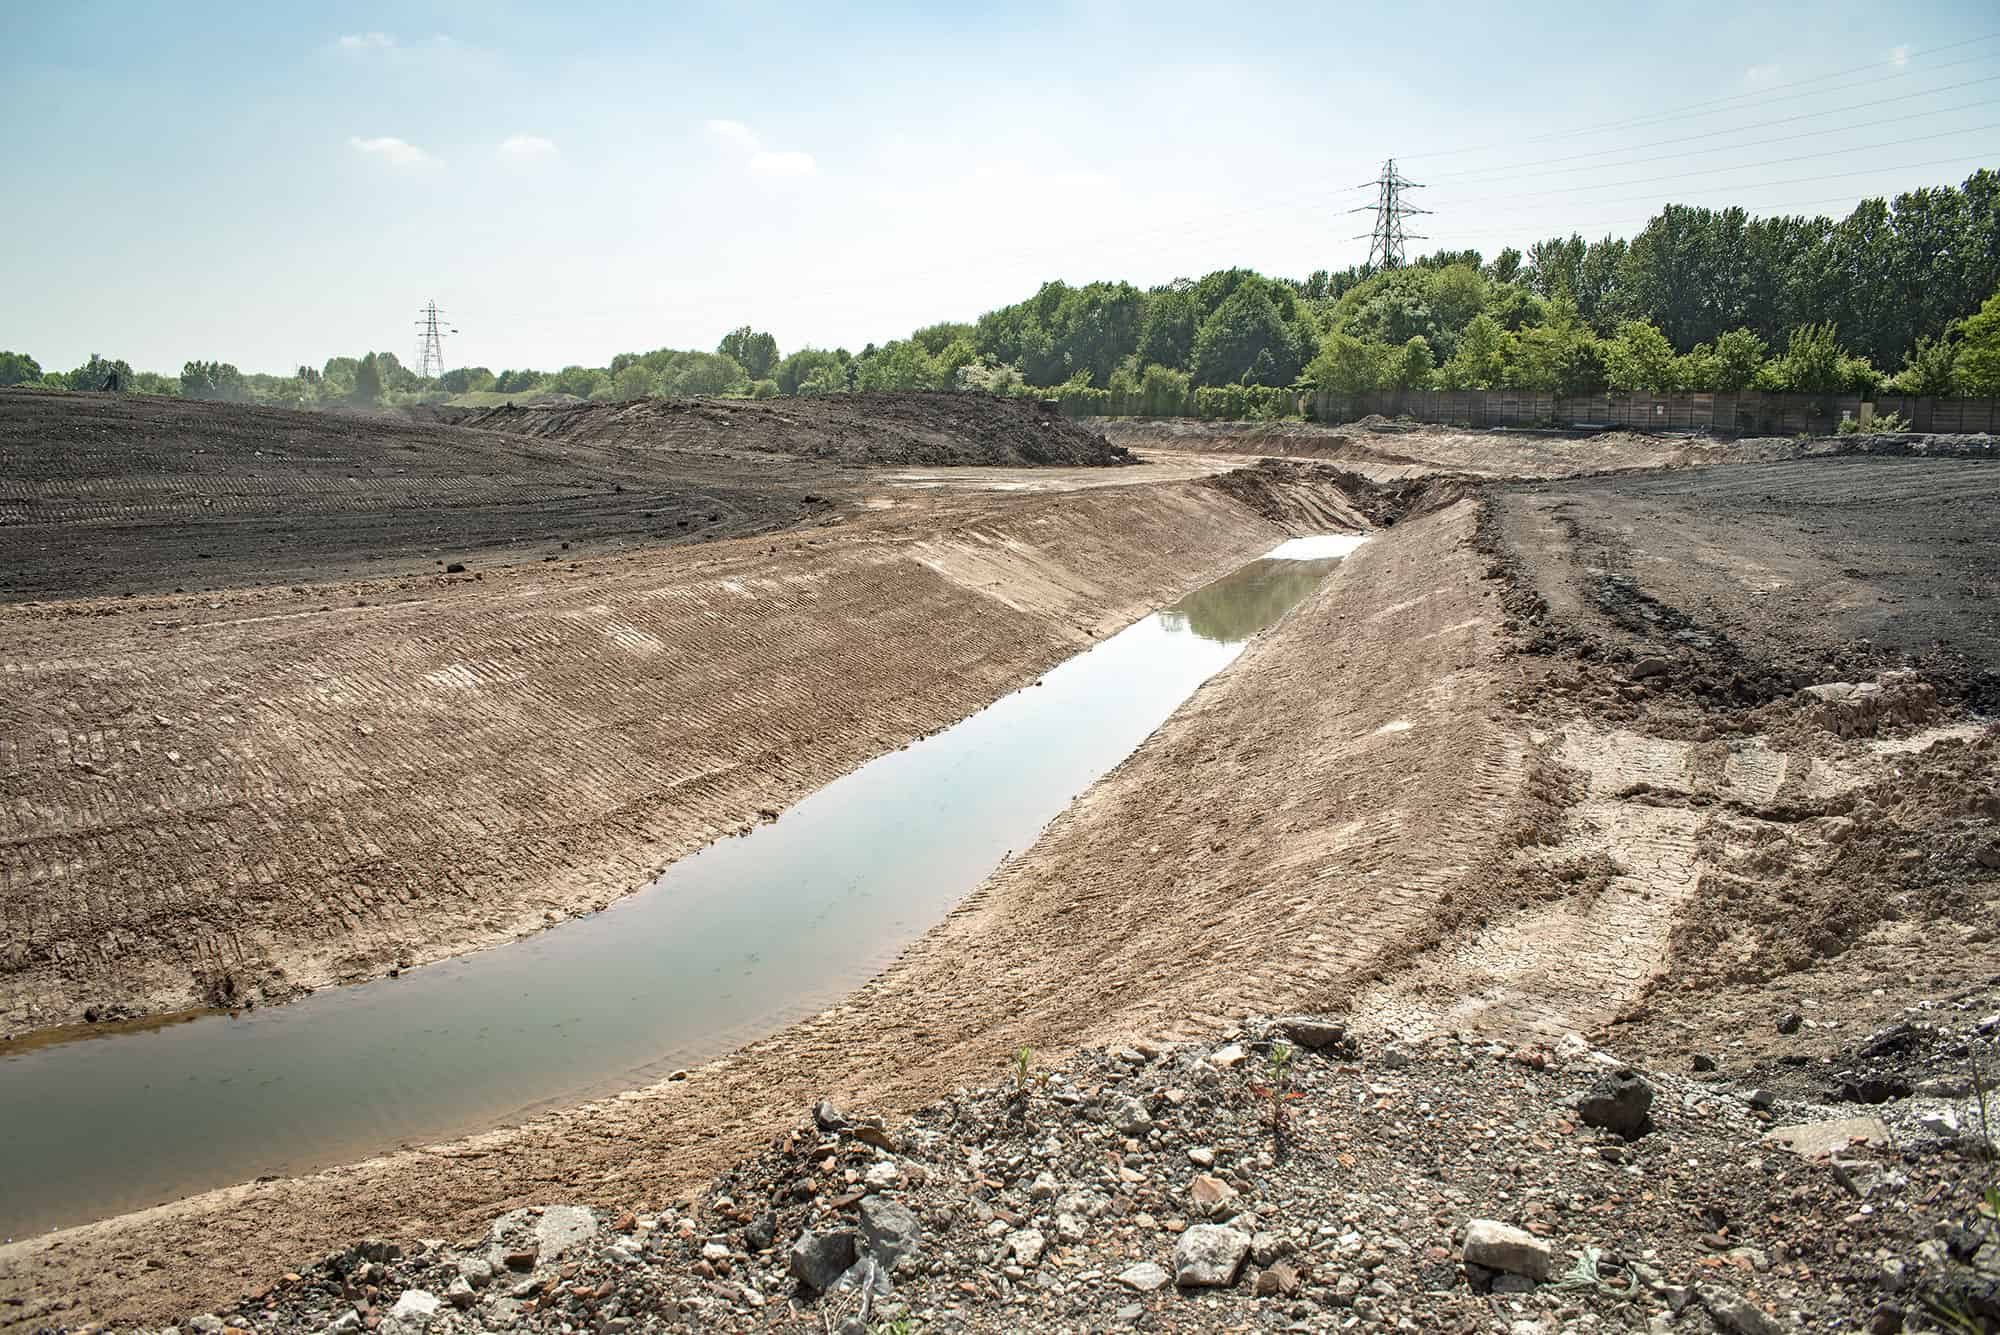 Ditch being constructed in brownfield site